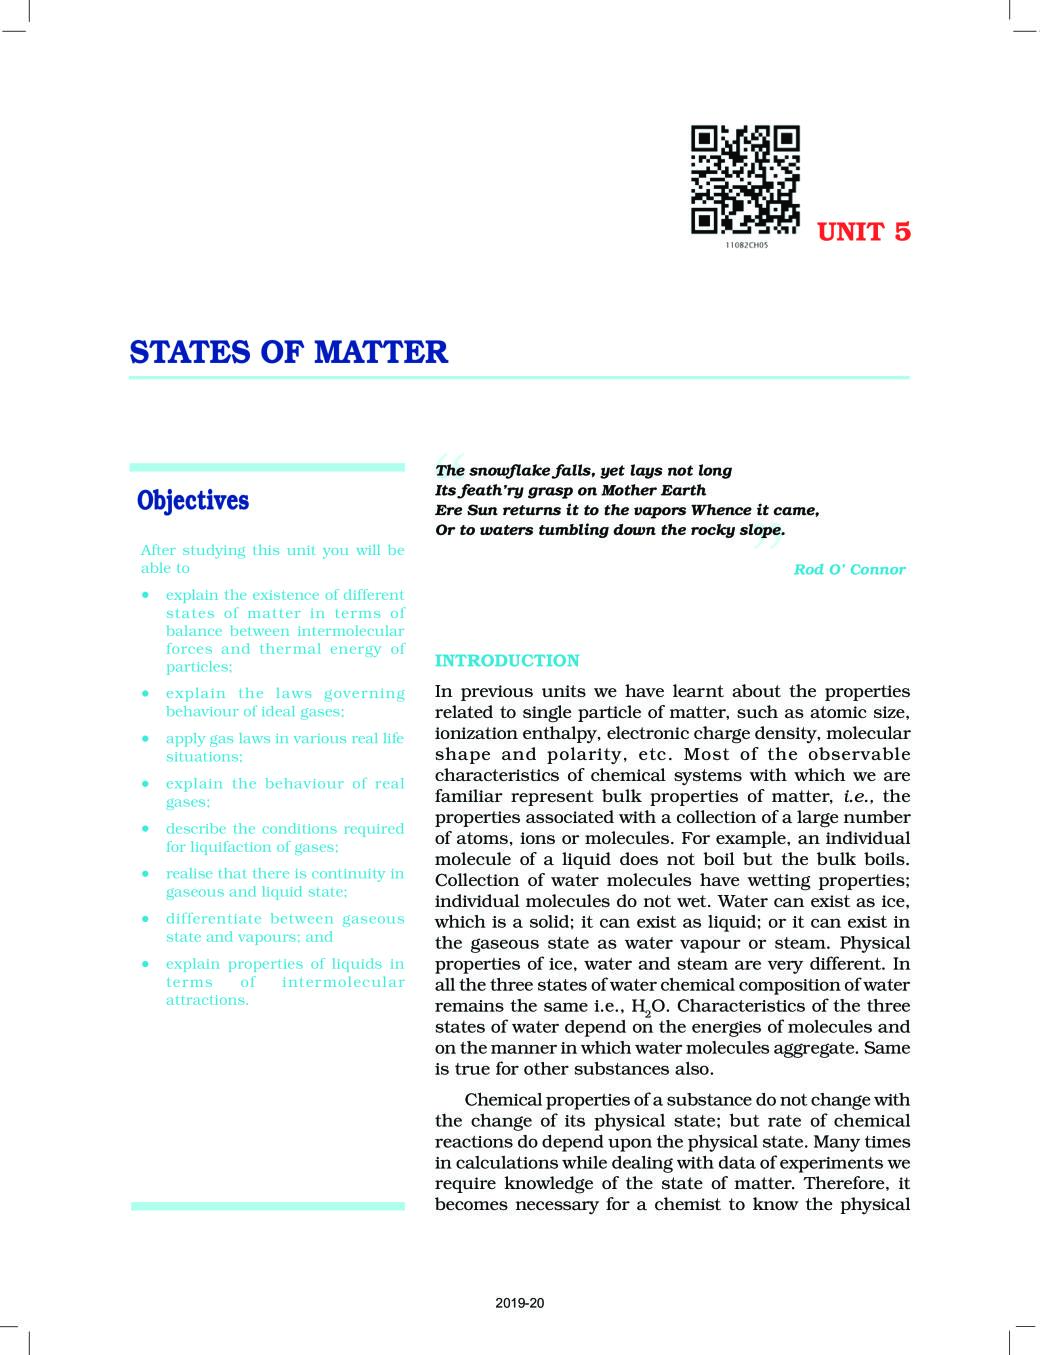 NCERT Book Class 11 Chemistry Chapter 5 States Of Matter